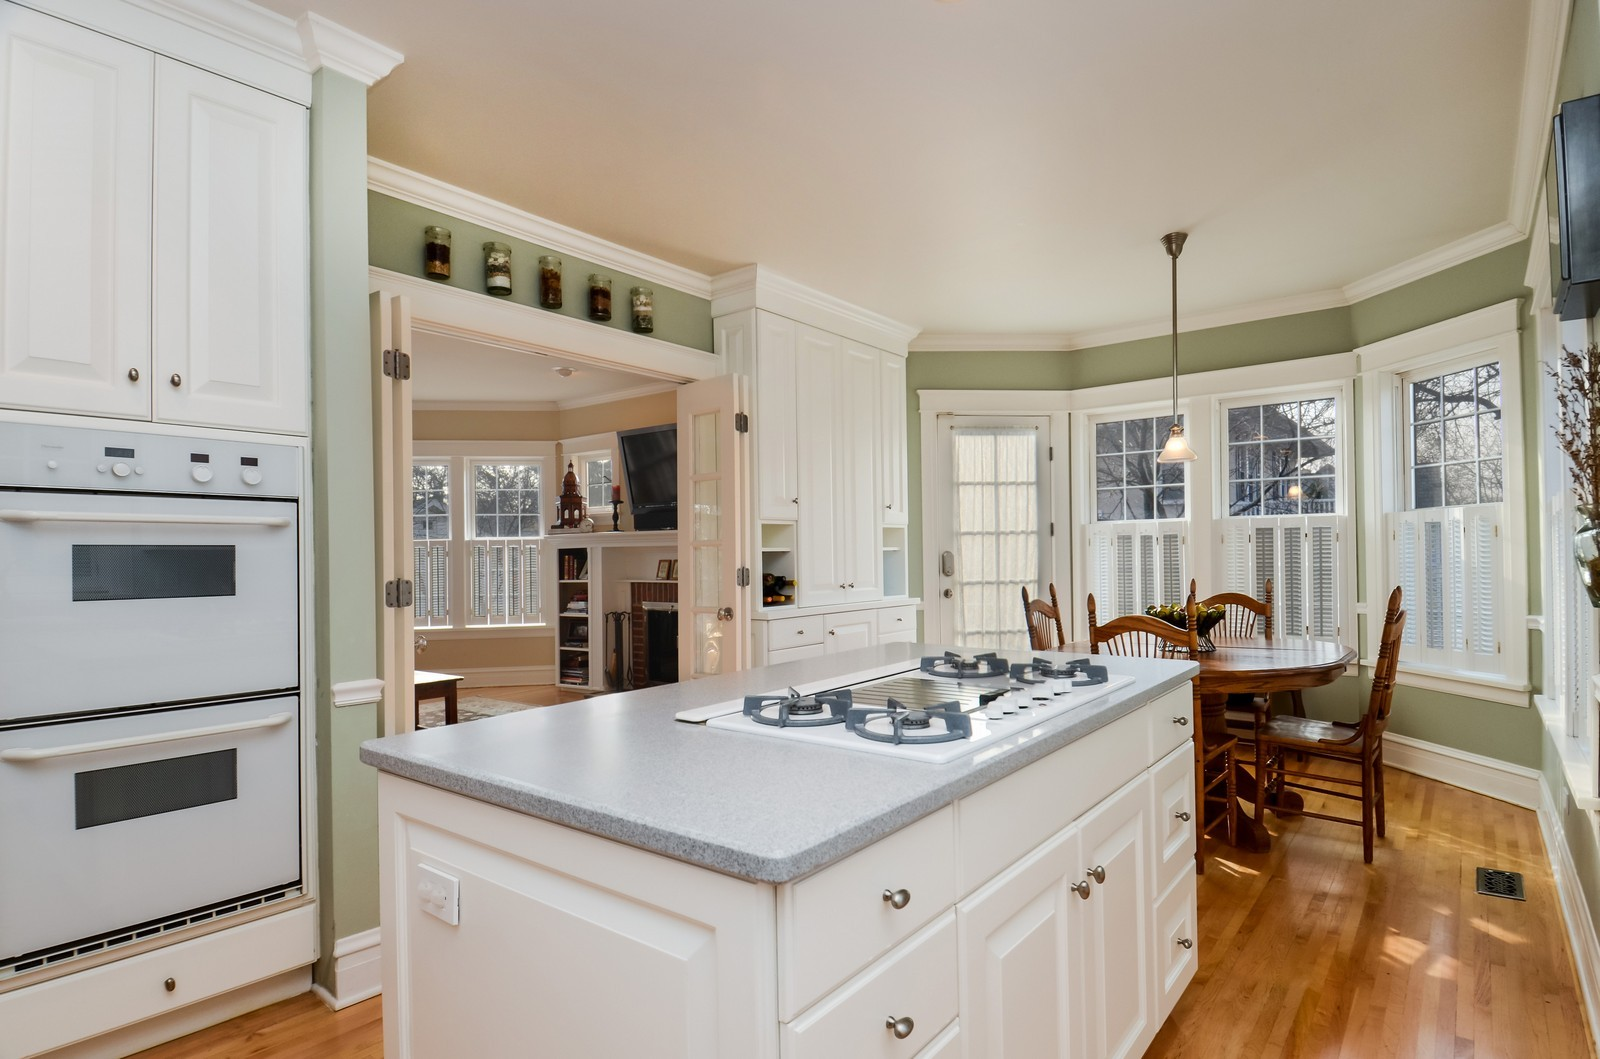 Real Estate Photography - 406 S Grant St, Hinsdale, IL, 60521 - Kitchen / Breakfast Room